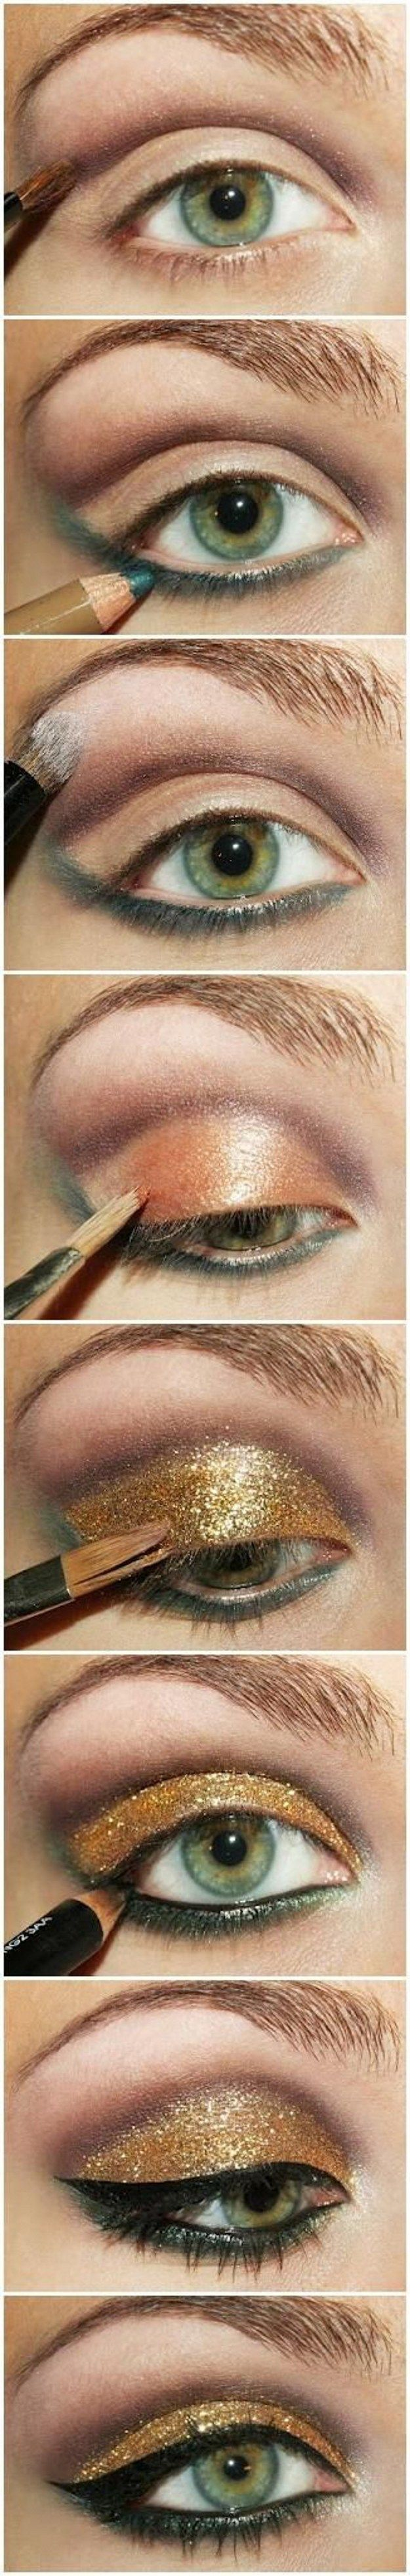 Easy eye makeup for green eyes green eyeshadow eyeshadow makeup beautiful glitter gold and green eyeshadow makeup prom makeup by makeup tutorials at http baditri Image collections